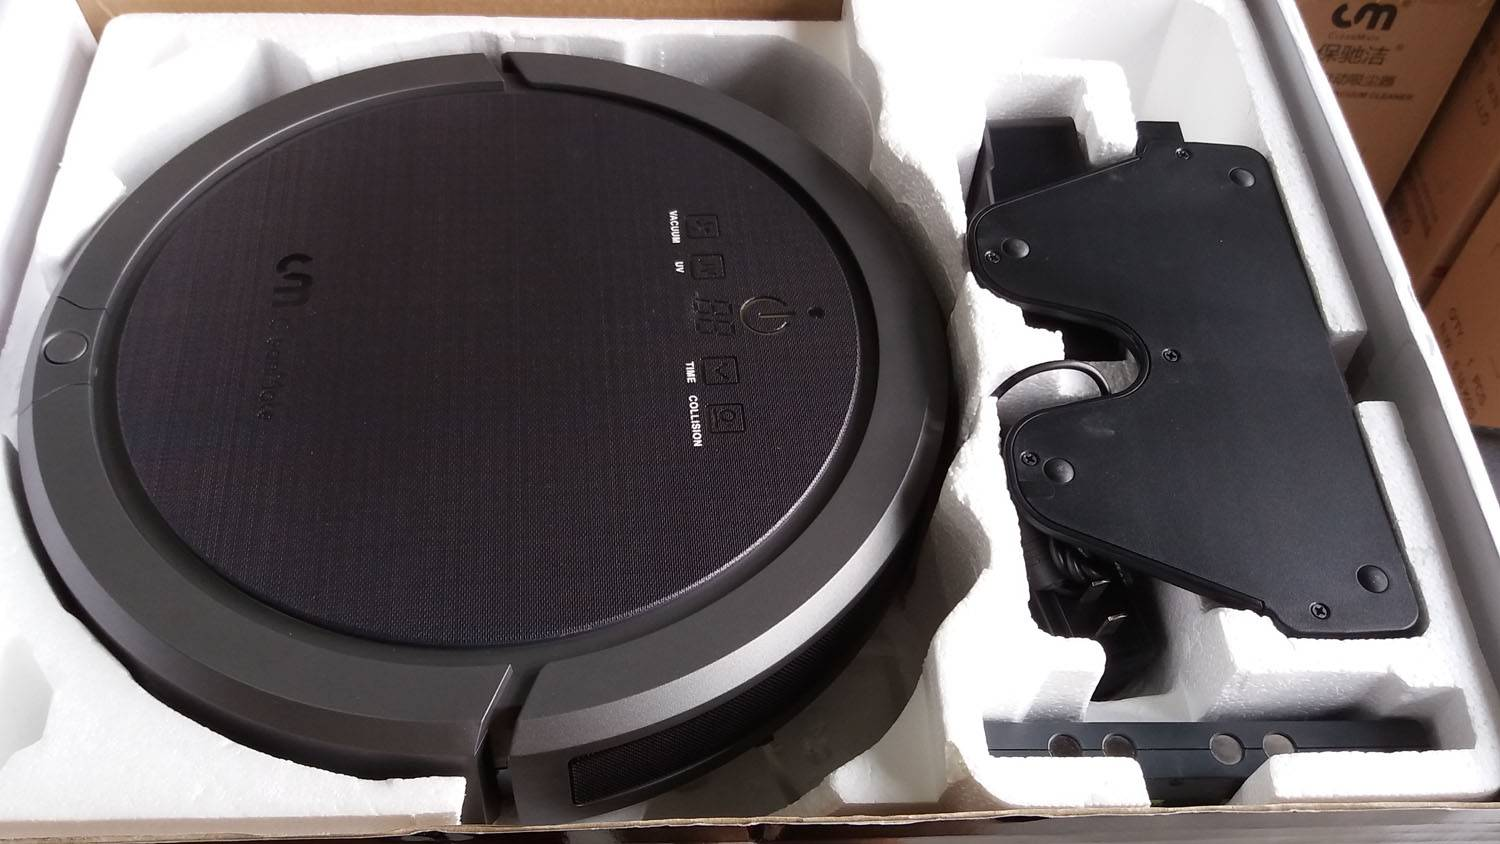 Hot Seller,Robotic Vacuum Cleaner,Auto Rechargeable with Remote Control